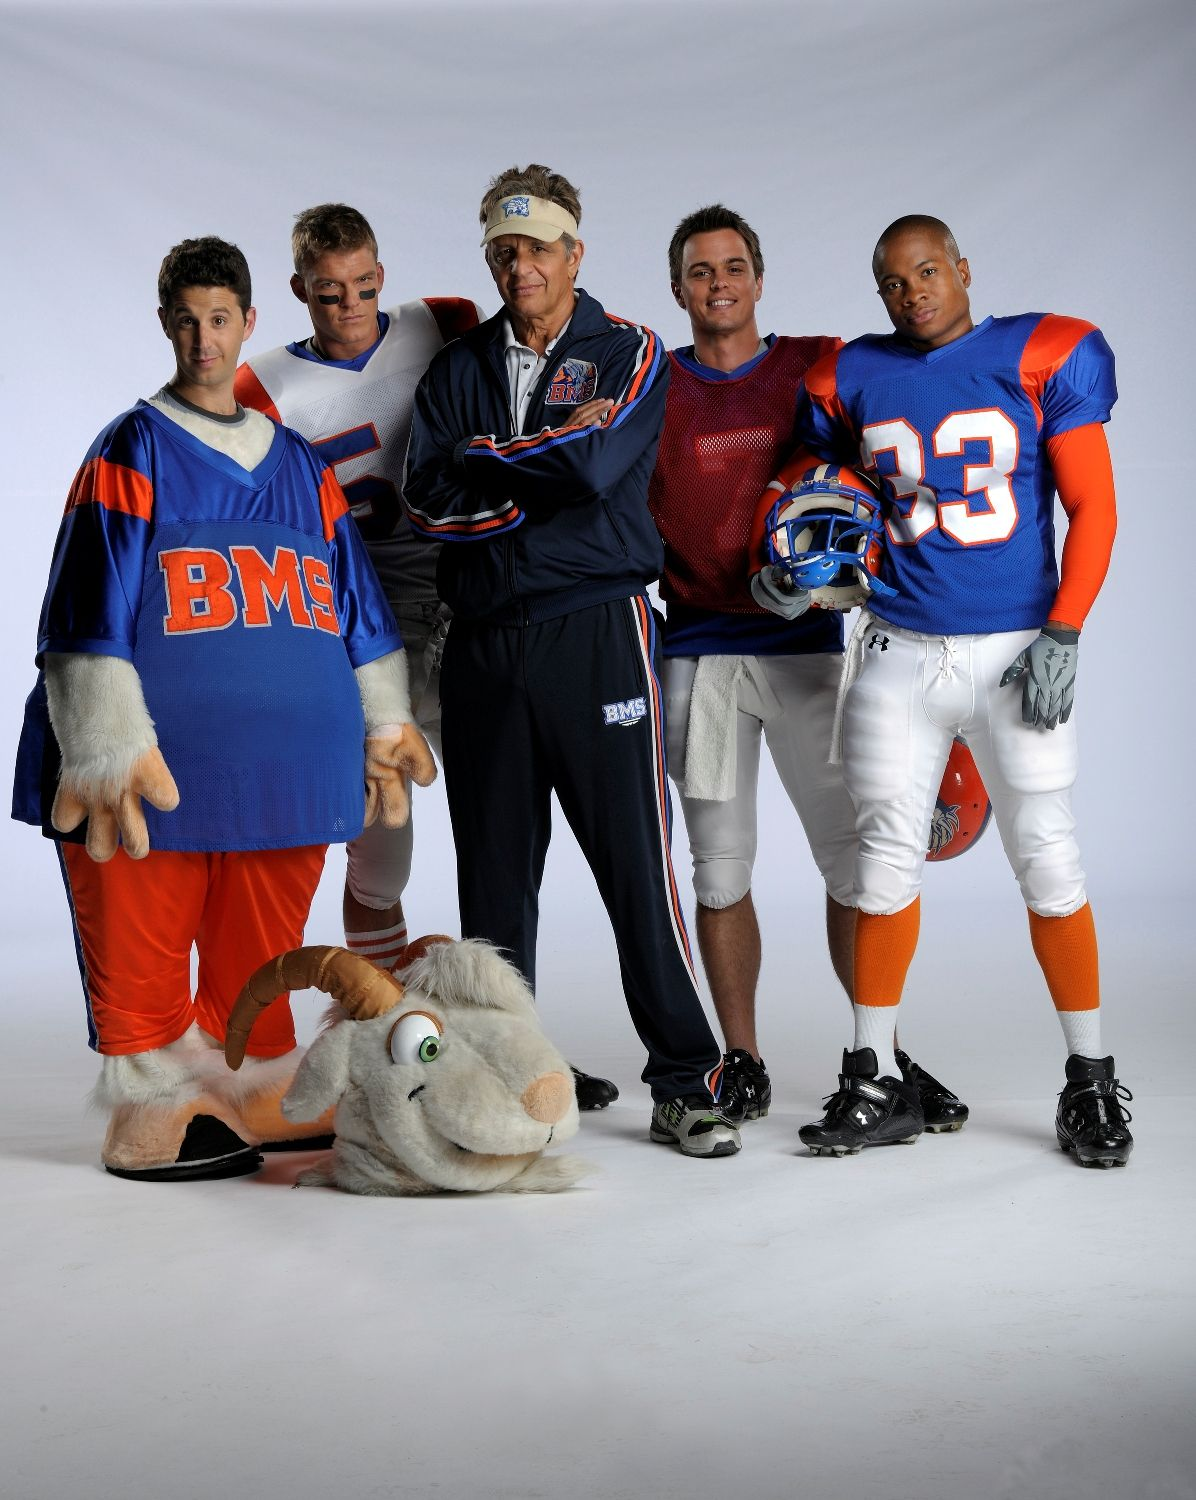 Blue Mountain State Spike 2010 2011 Starring Darin Brooks Alan Ritchson Sam Jones Iii Page Kennedy Chris Romano Frankie Shaw